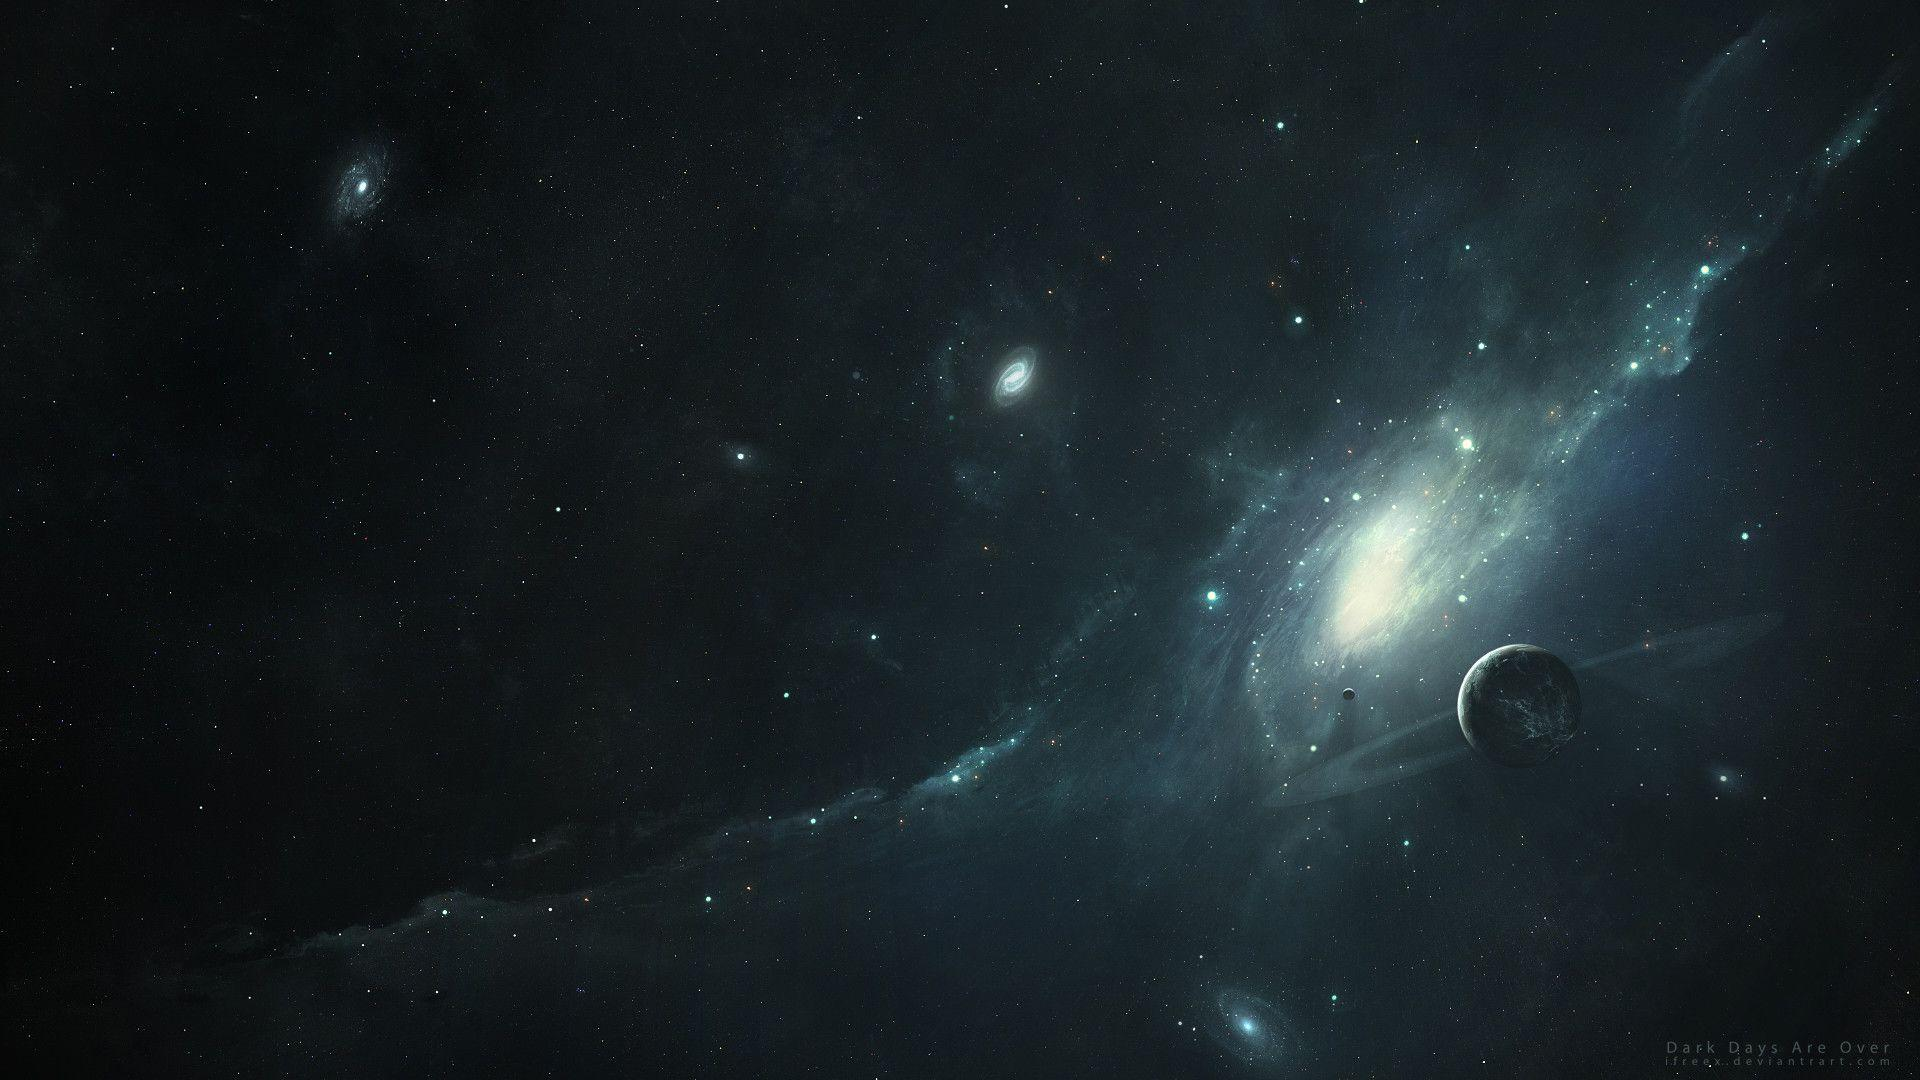 Dark Space Wallpapers 1920x1080